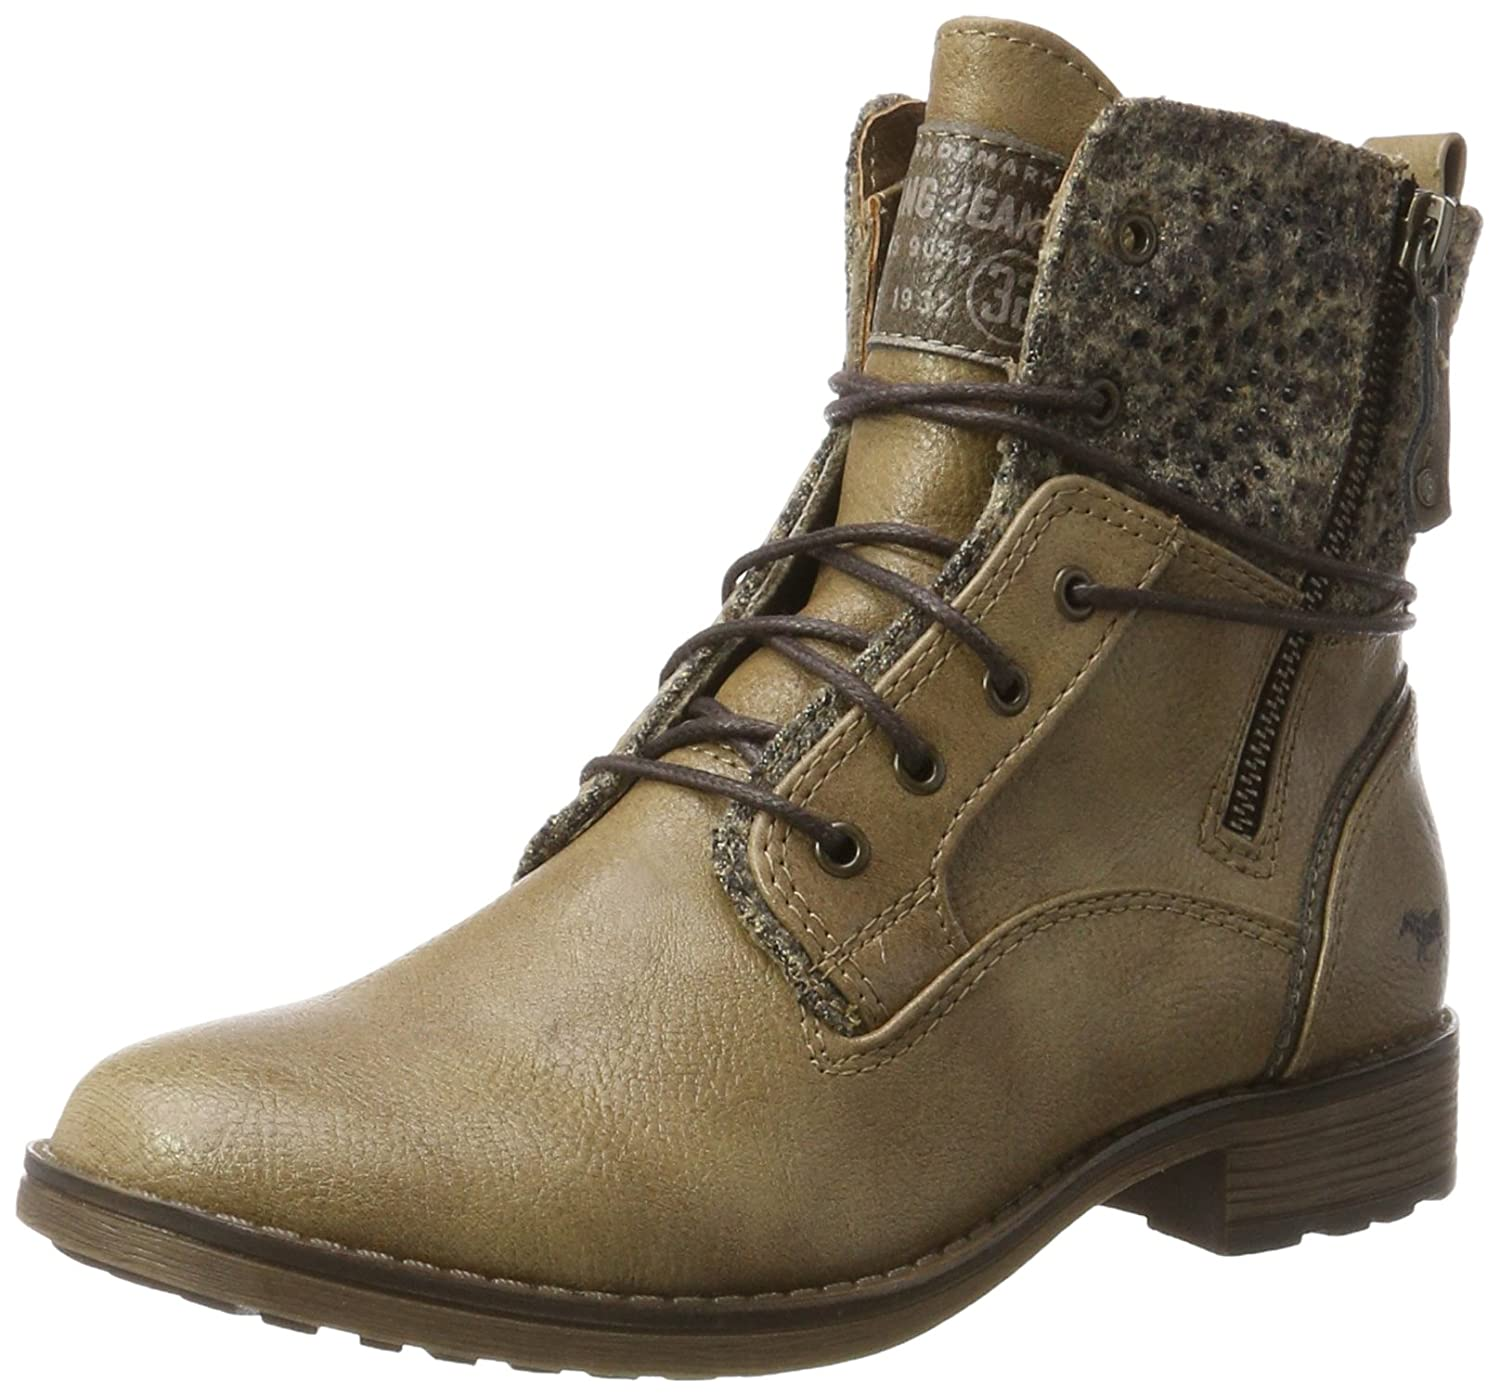 Mustang 1265-504-318, Bottes Femme, Femme, Marron (Taupe) 16371 Marron (Taupe) (Taupe) 4cb308d - automatisms.space